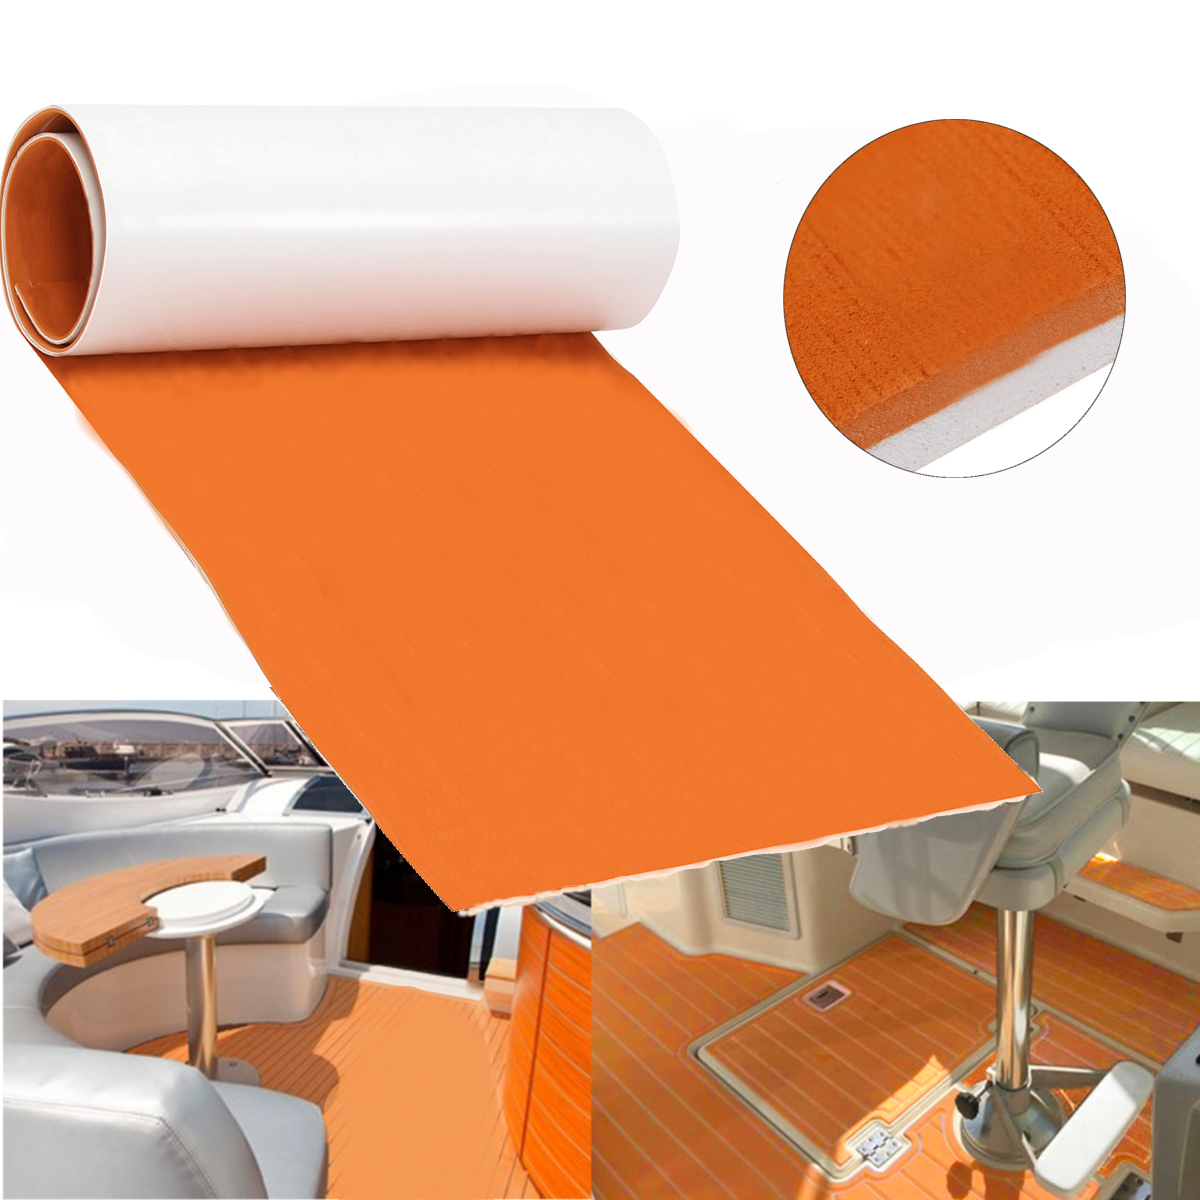 60CMx200CM 6mm Self Adhesive DIY EVA Foam teak Marine Flooring Boat Decking Teak Sheet Yacht Floor Pad Foam Floor Mat Orange